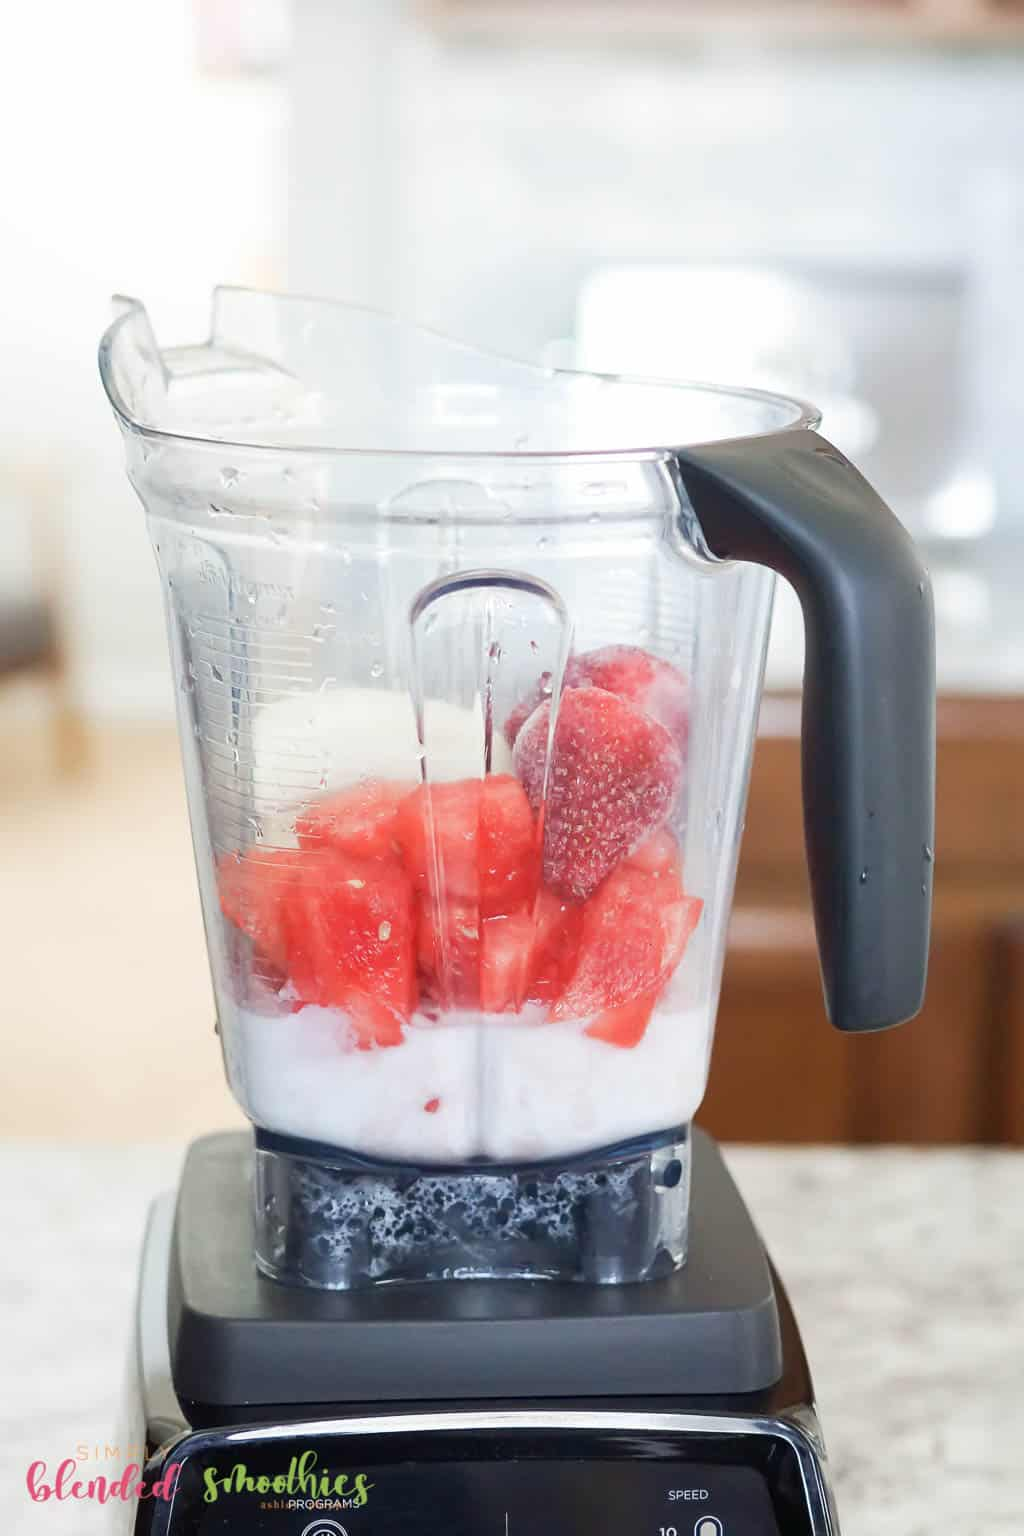 blend easy watermelon smoothie recipe ingredients